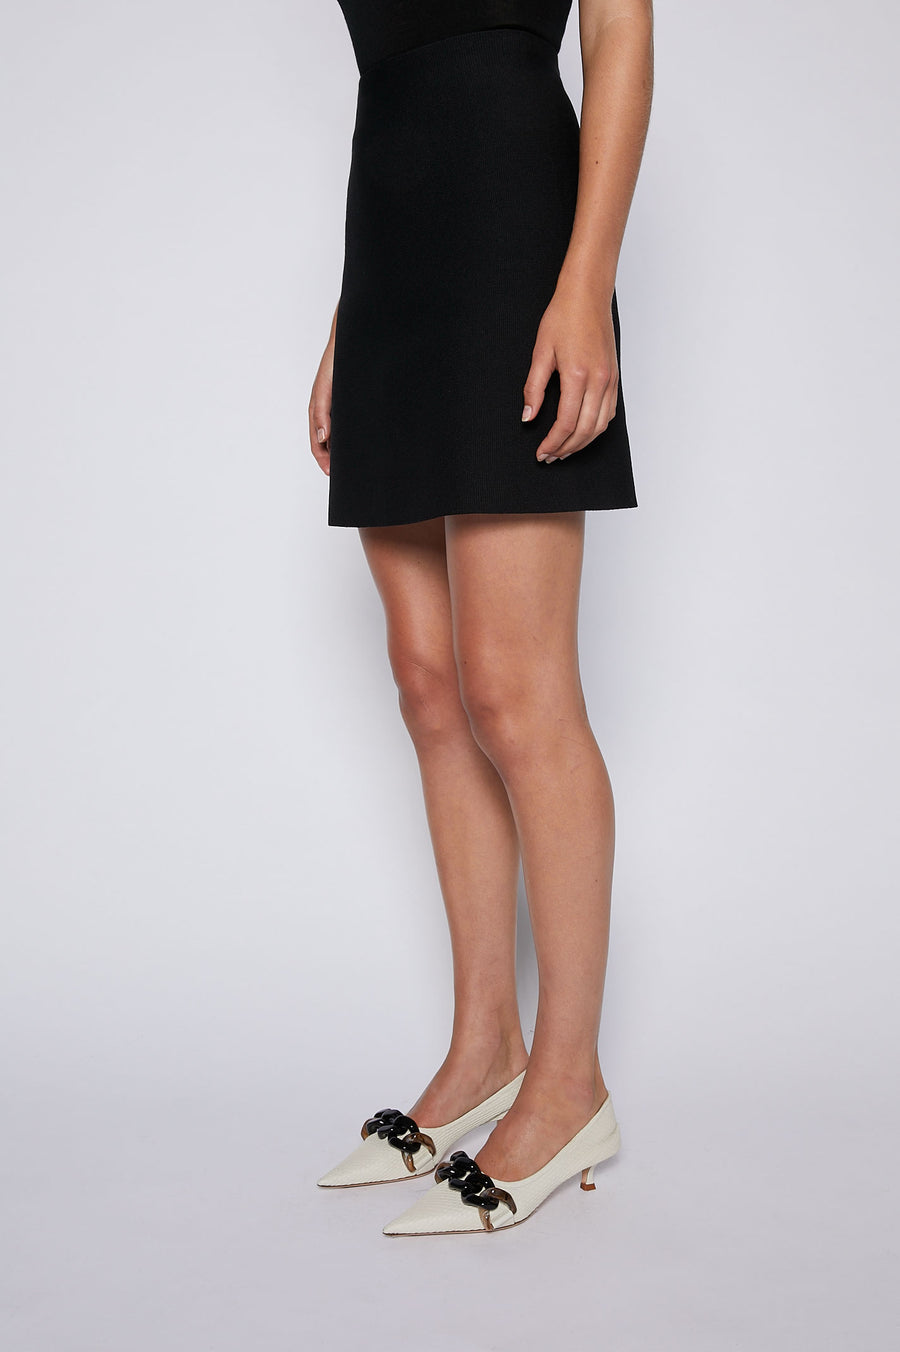 The Crepe Knit Mini Skirt is your transitional wardrobe staple